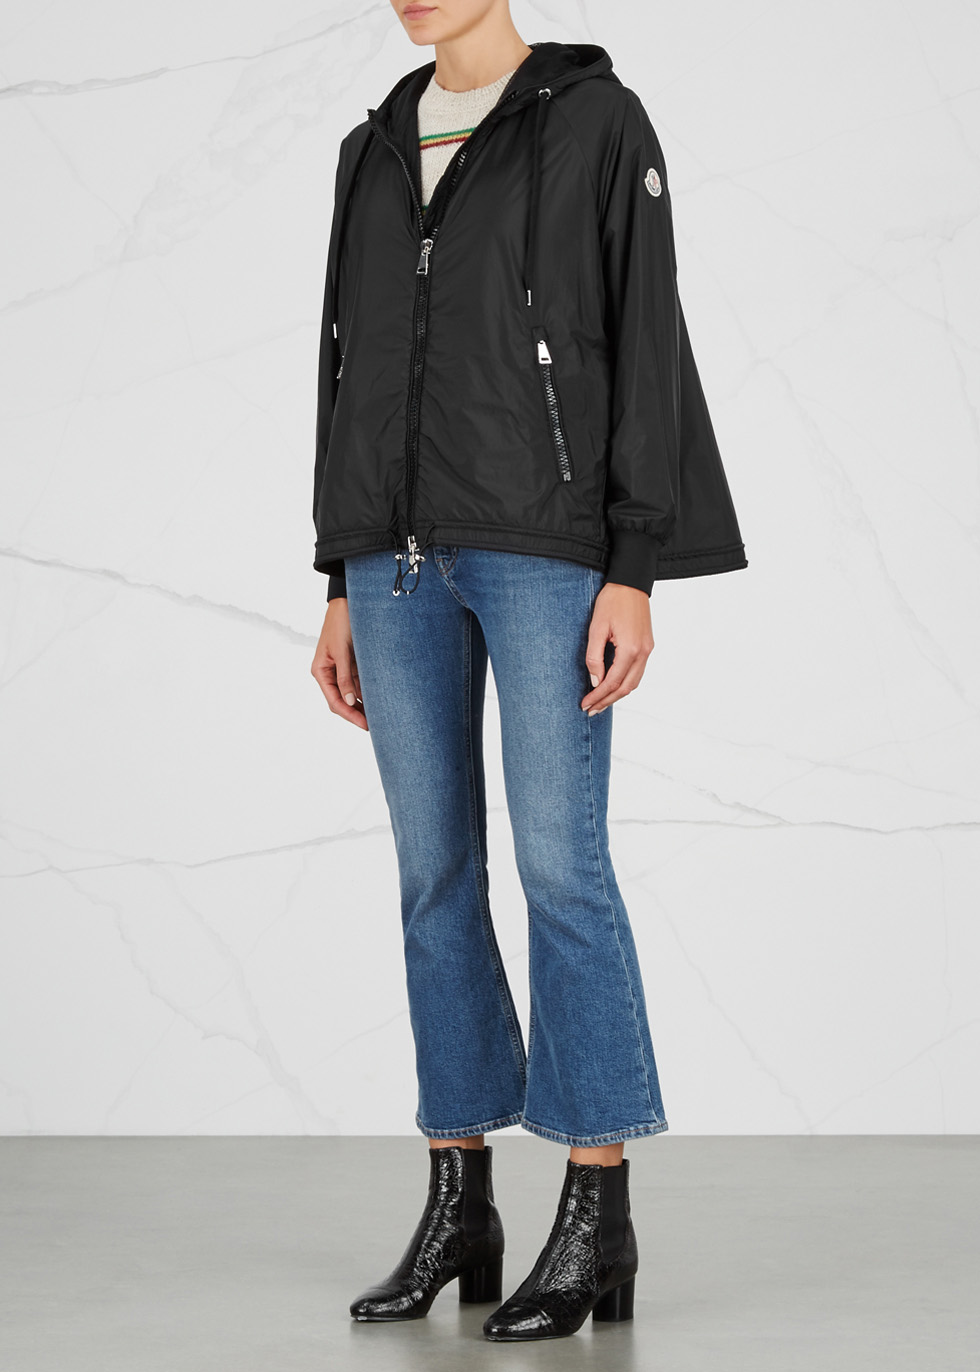 Orchis black packable shell jacket - Moncler